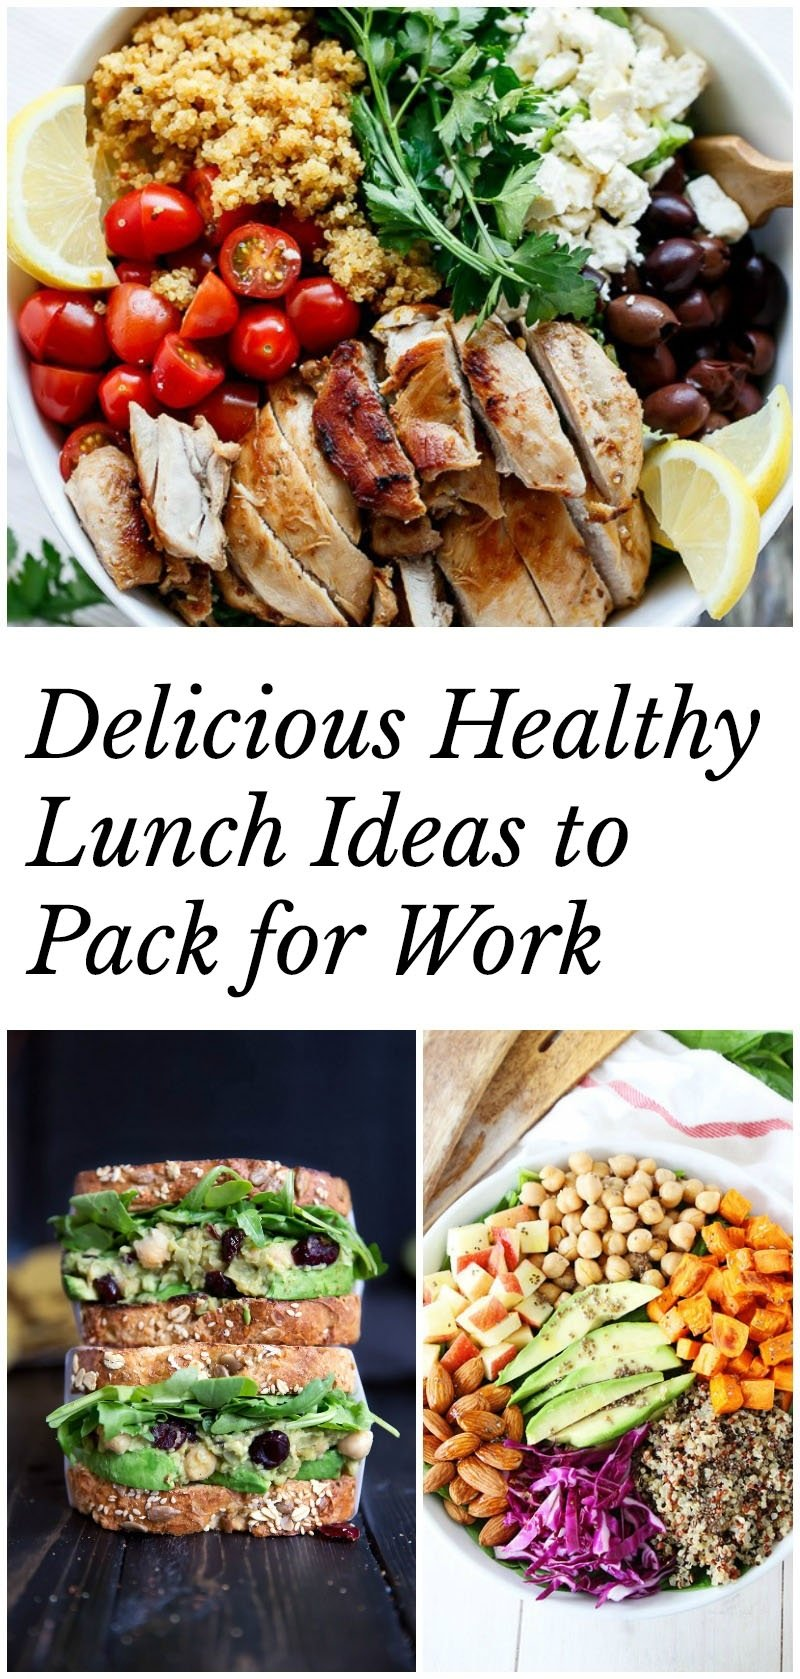 10 Stylish Simple Lunch Ideas For Work healthy lunch ideas to pack for work 40 recipes 3 2021